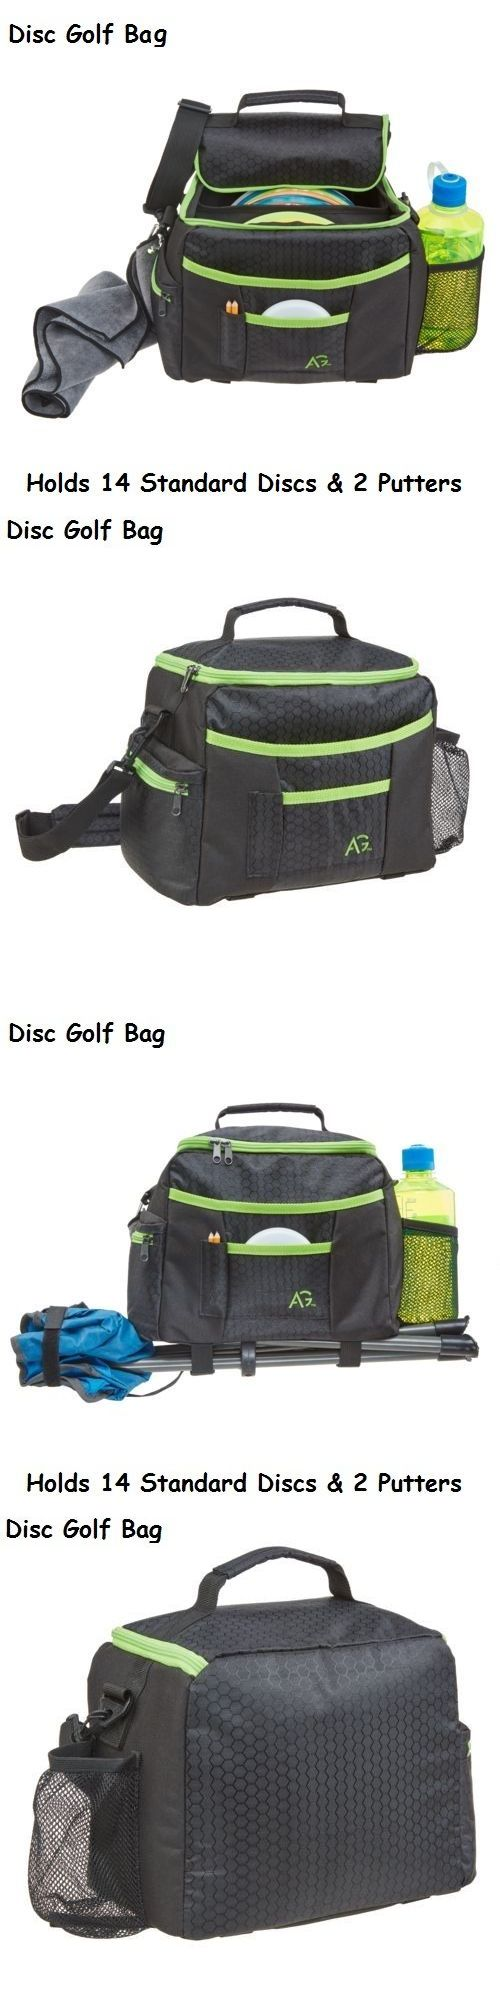 Disc Golf 20851: Disc Golf Frisbee Shoulder Carry Bag Black Outdoor Sports Discs Putter New -> BUY IT NOW ONLY: $34.97 on eBay!